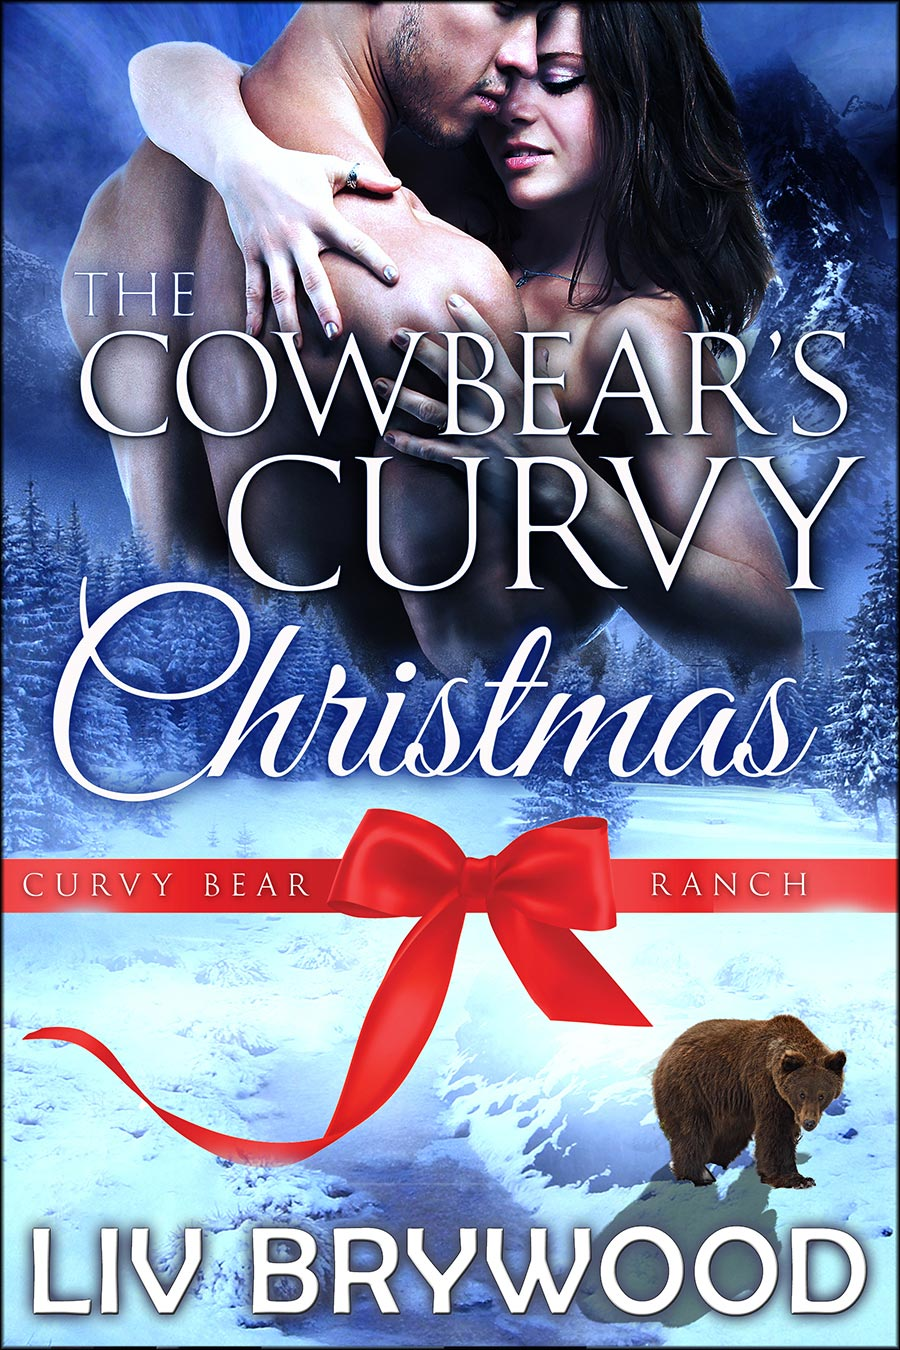 The-Cowbear's-curvy-christmas-copy.jpg